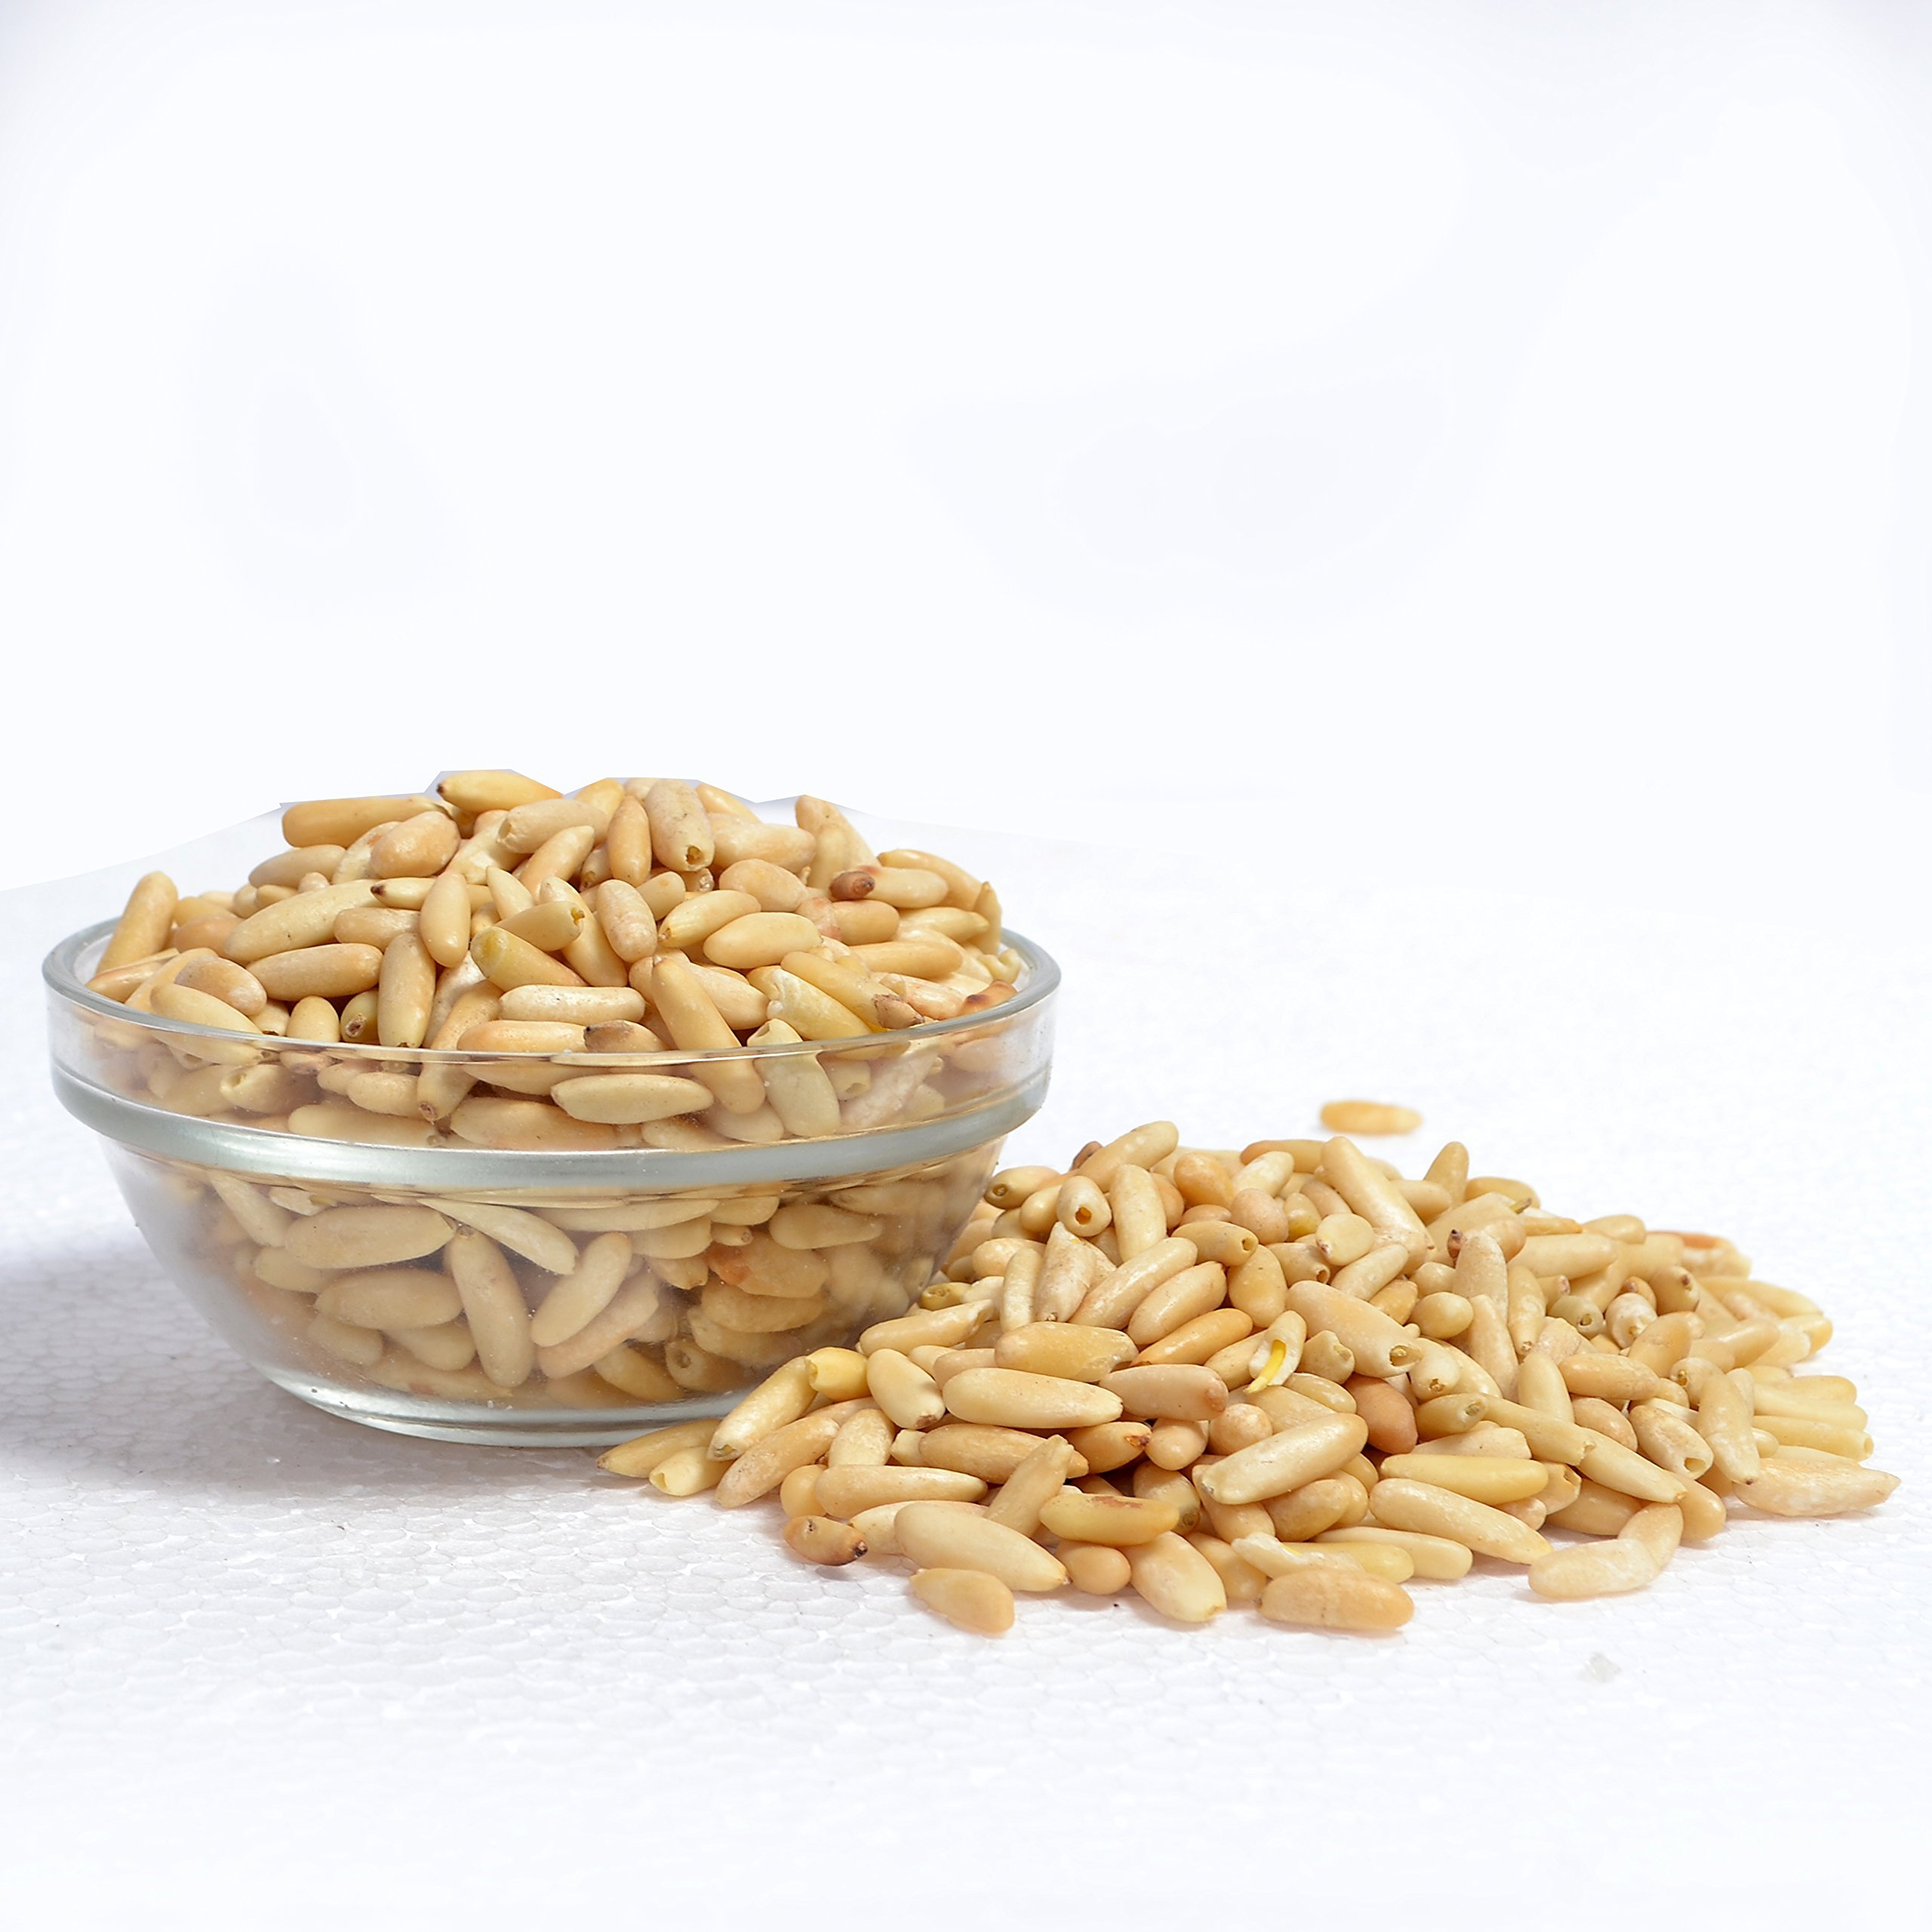 Leeve Dry Fruits Fresh And Hygienic Without Shelled Pine Nuts - Chilgoza - 200 Grams by Leeve Dry Fruits (Image #3)